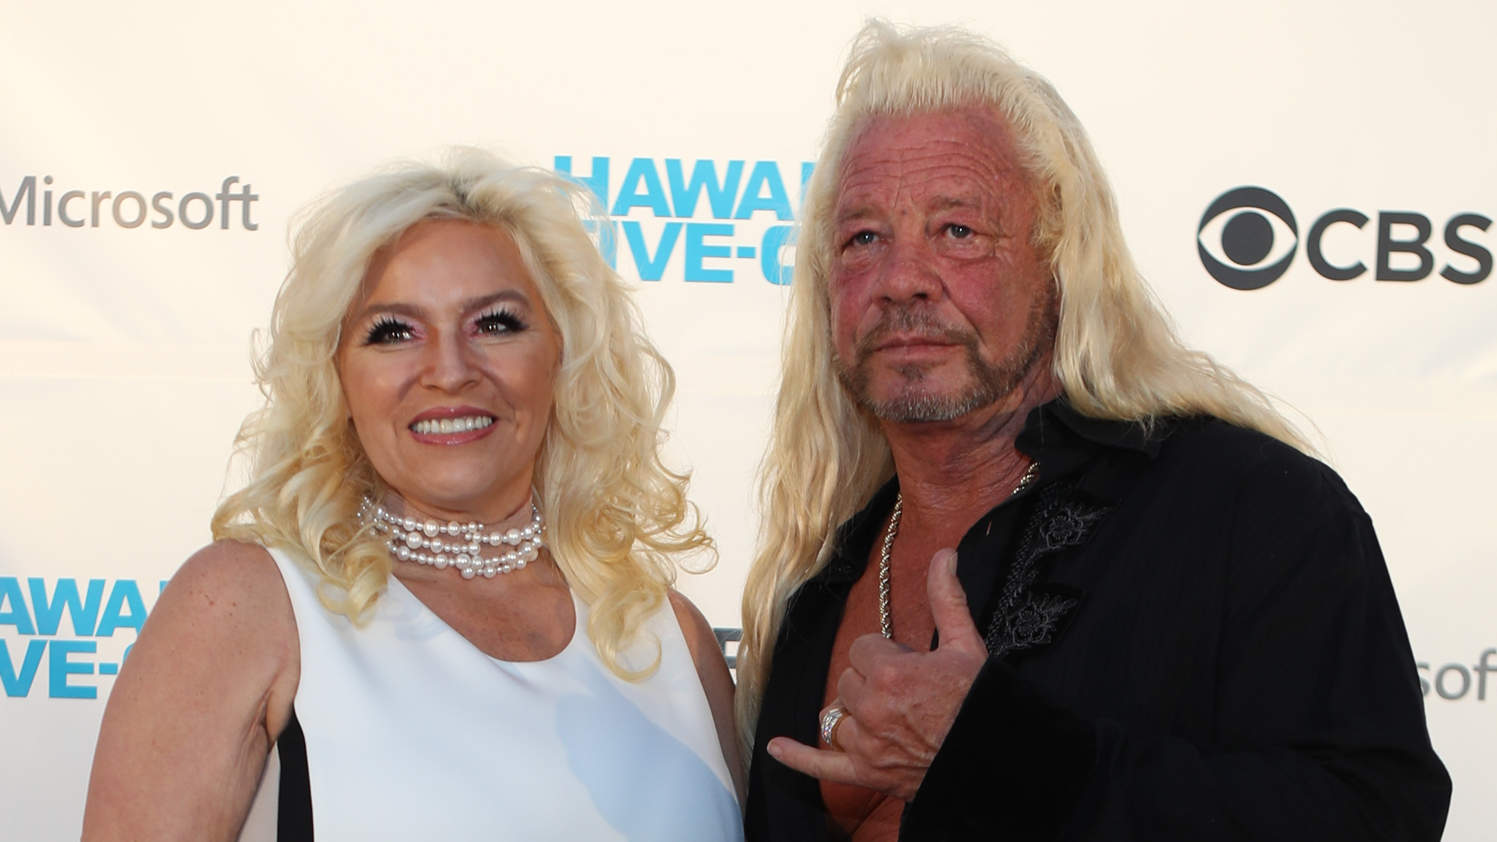 Dog the Bounty Hunter's Wife Beth Chapman Shares First Update Amid Health Crisis: 'Cancer Sucks'